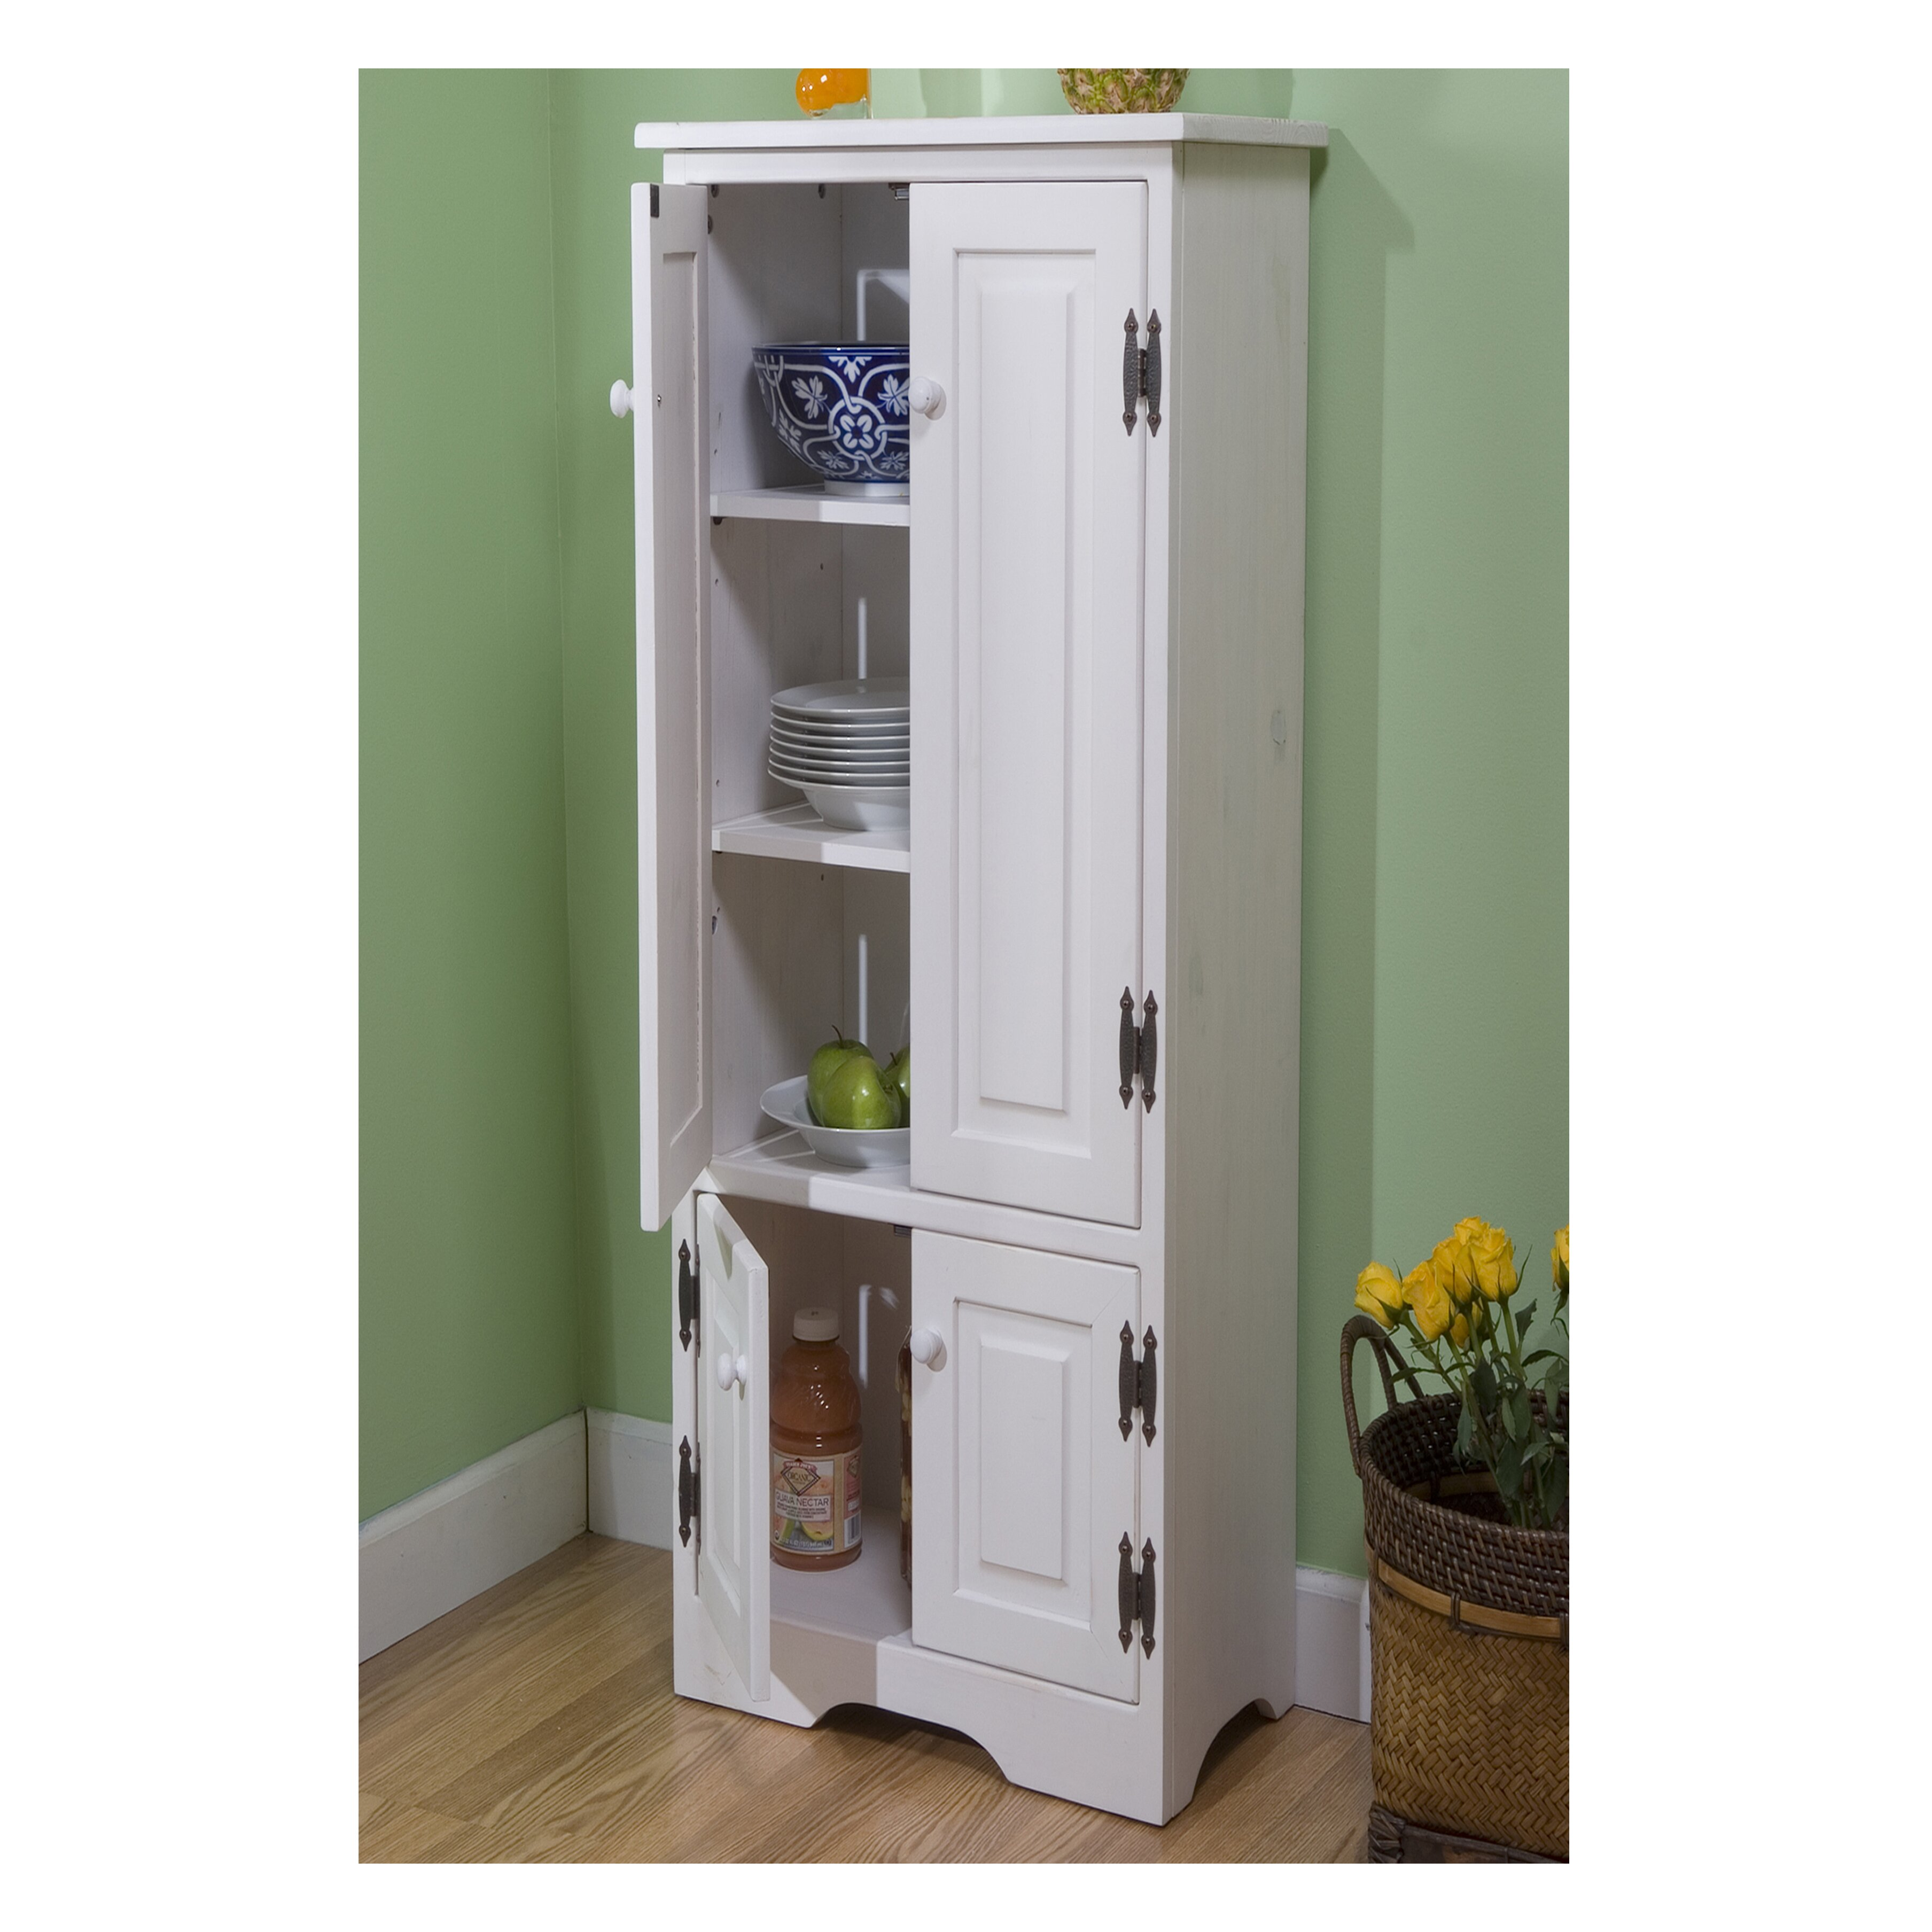 extra tall kitchen cabinets alcott hill cabinet amp reviews wayfair 7118